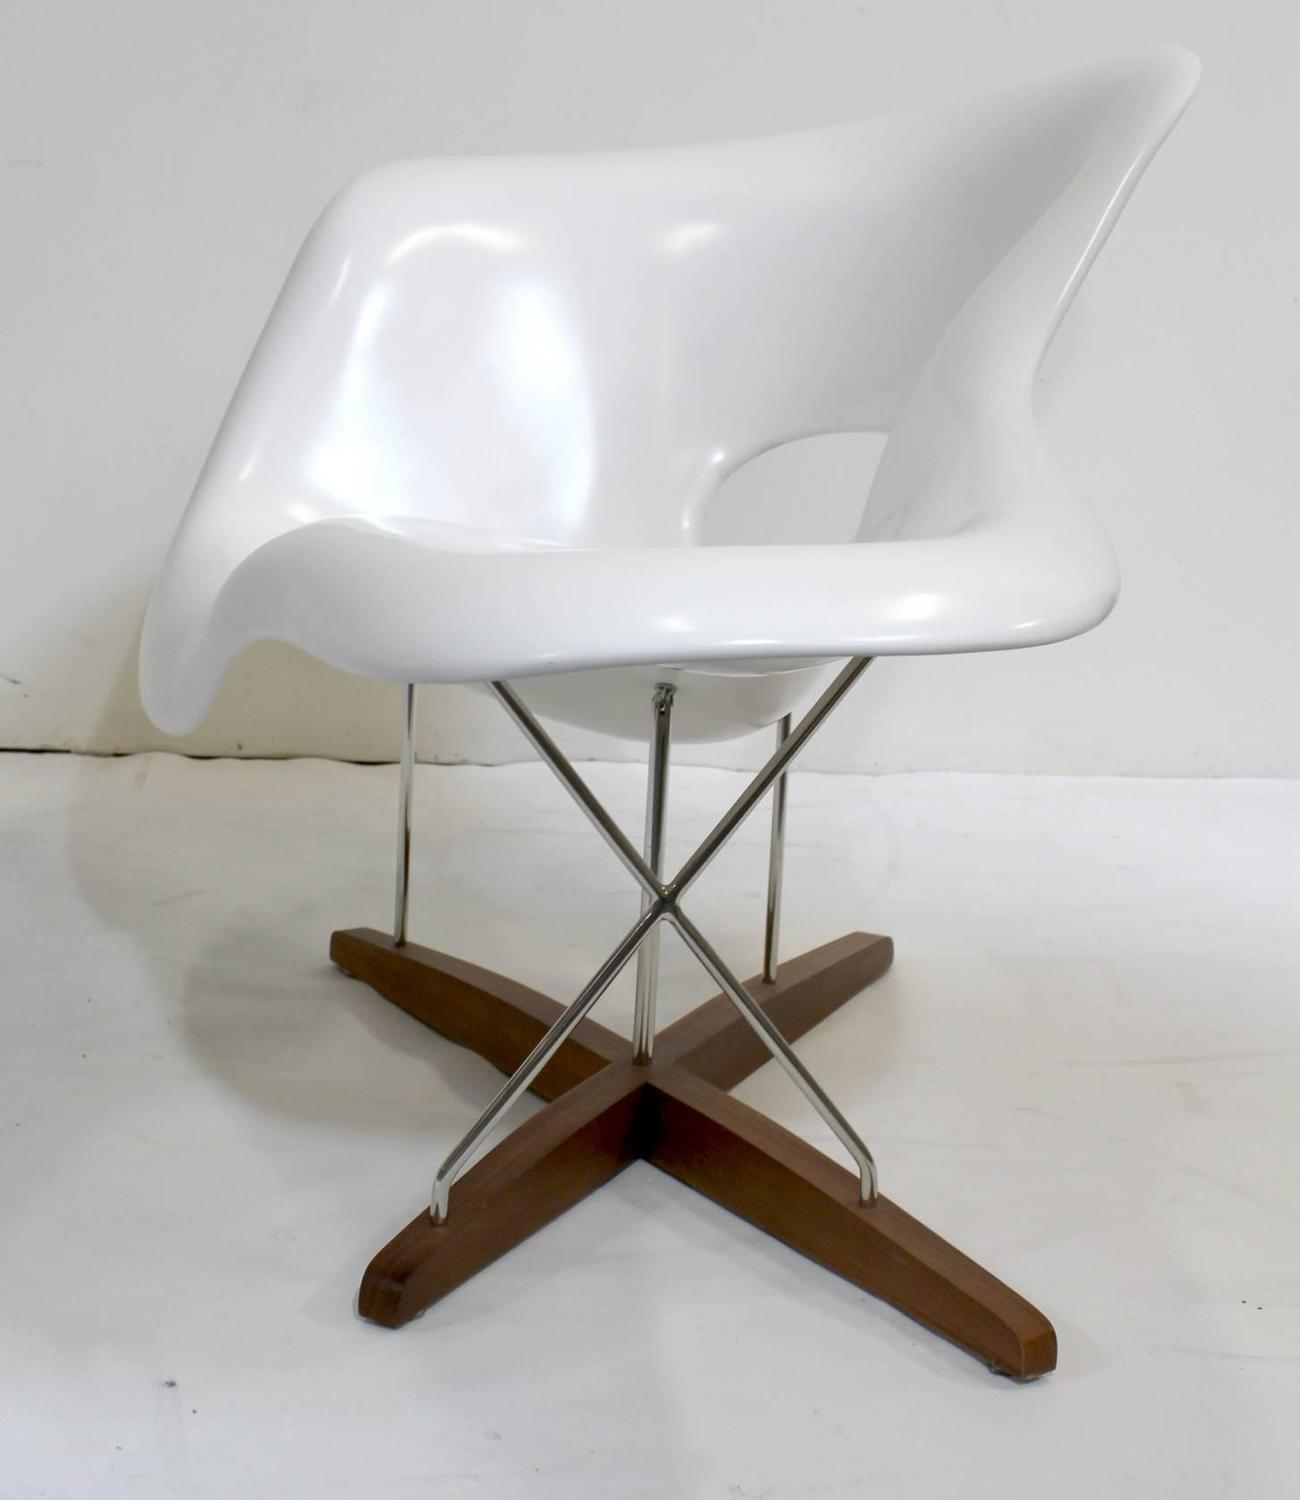 Eames vitra white la chaise chair at 1stdibs - Chaise inspiration eames ...